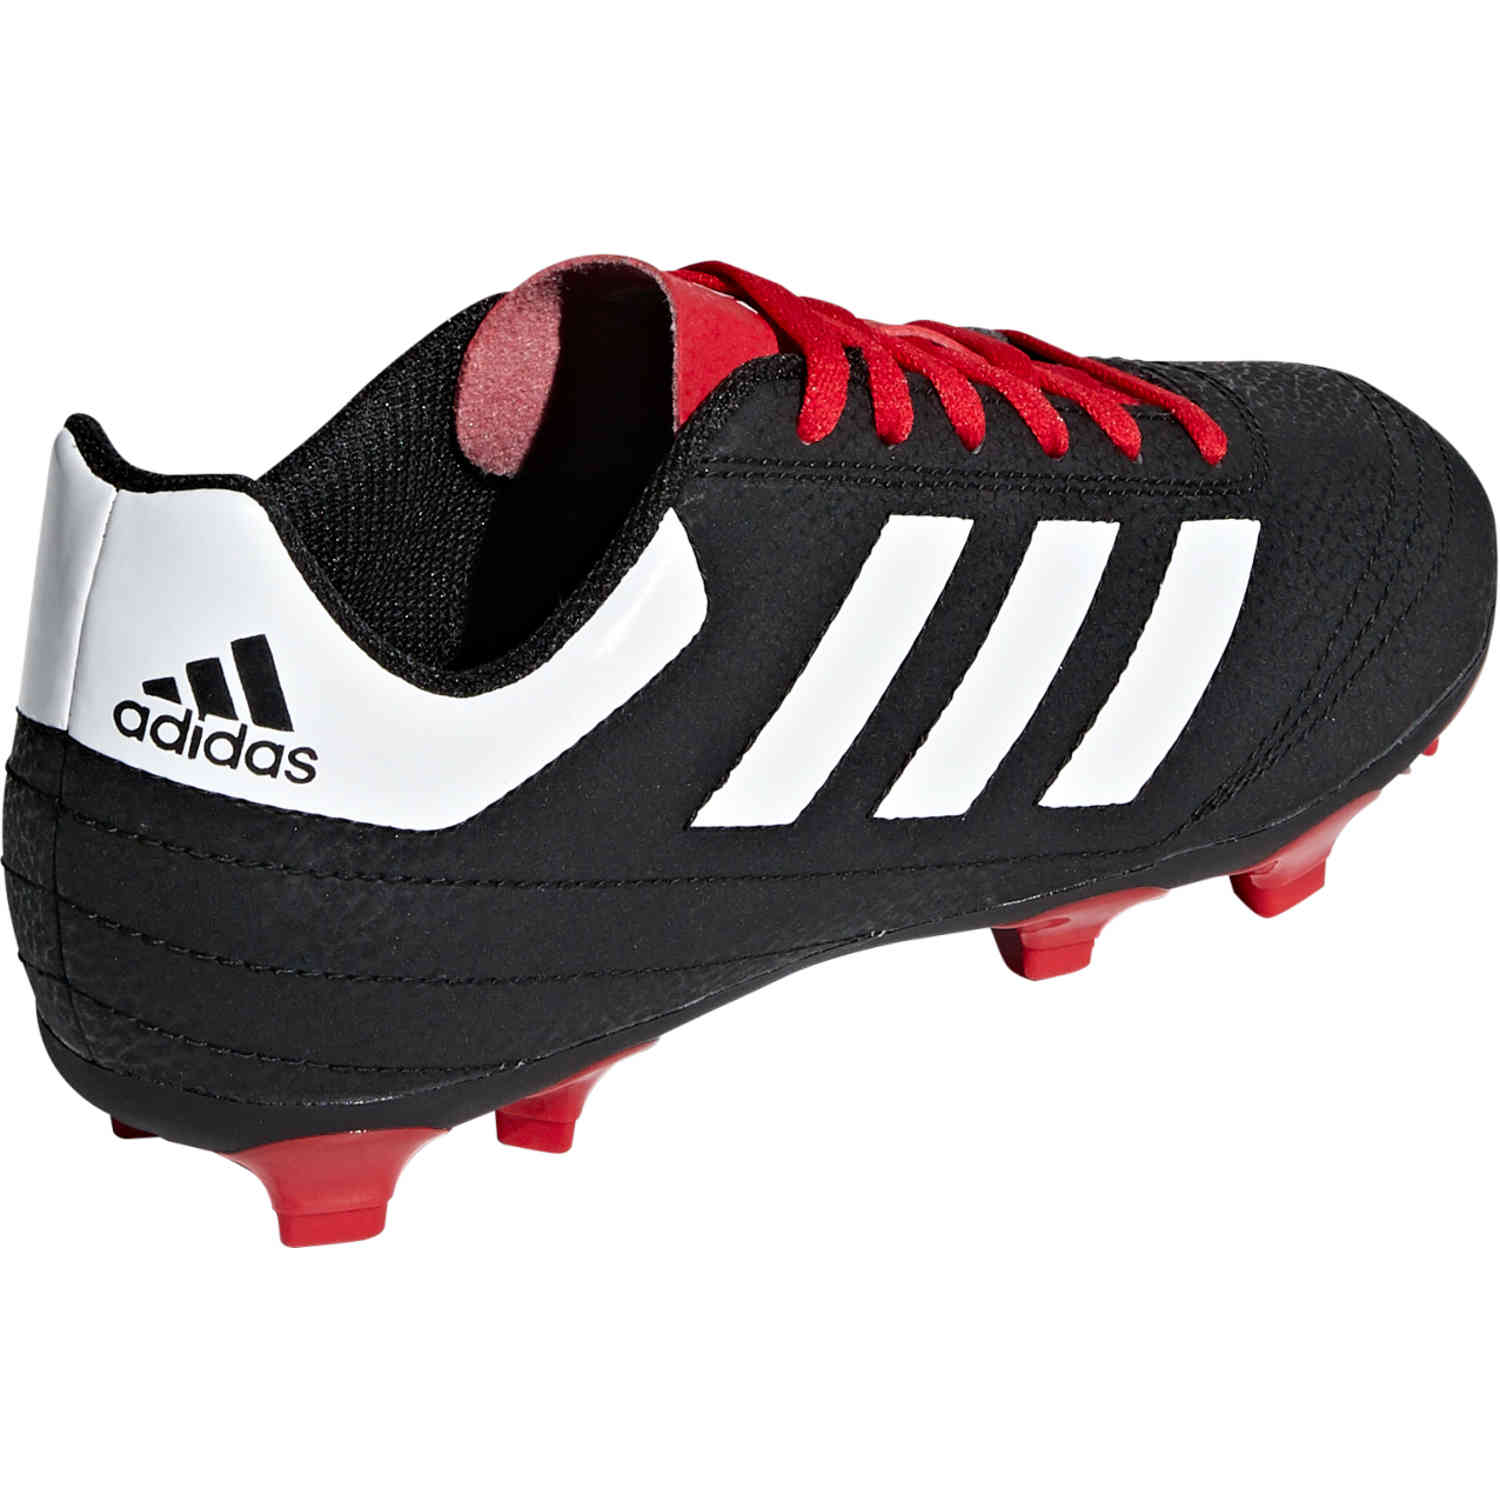 683c93d5a3e Kids adidas Goletto VI FG - Youth FG - Black White Scarlet - SoccerPro